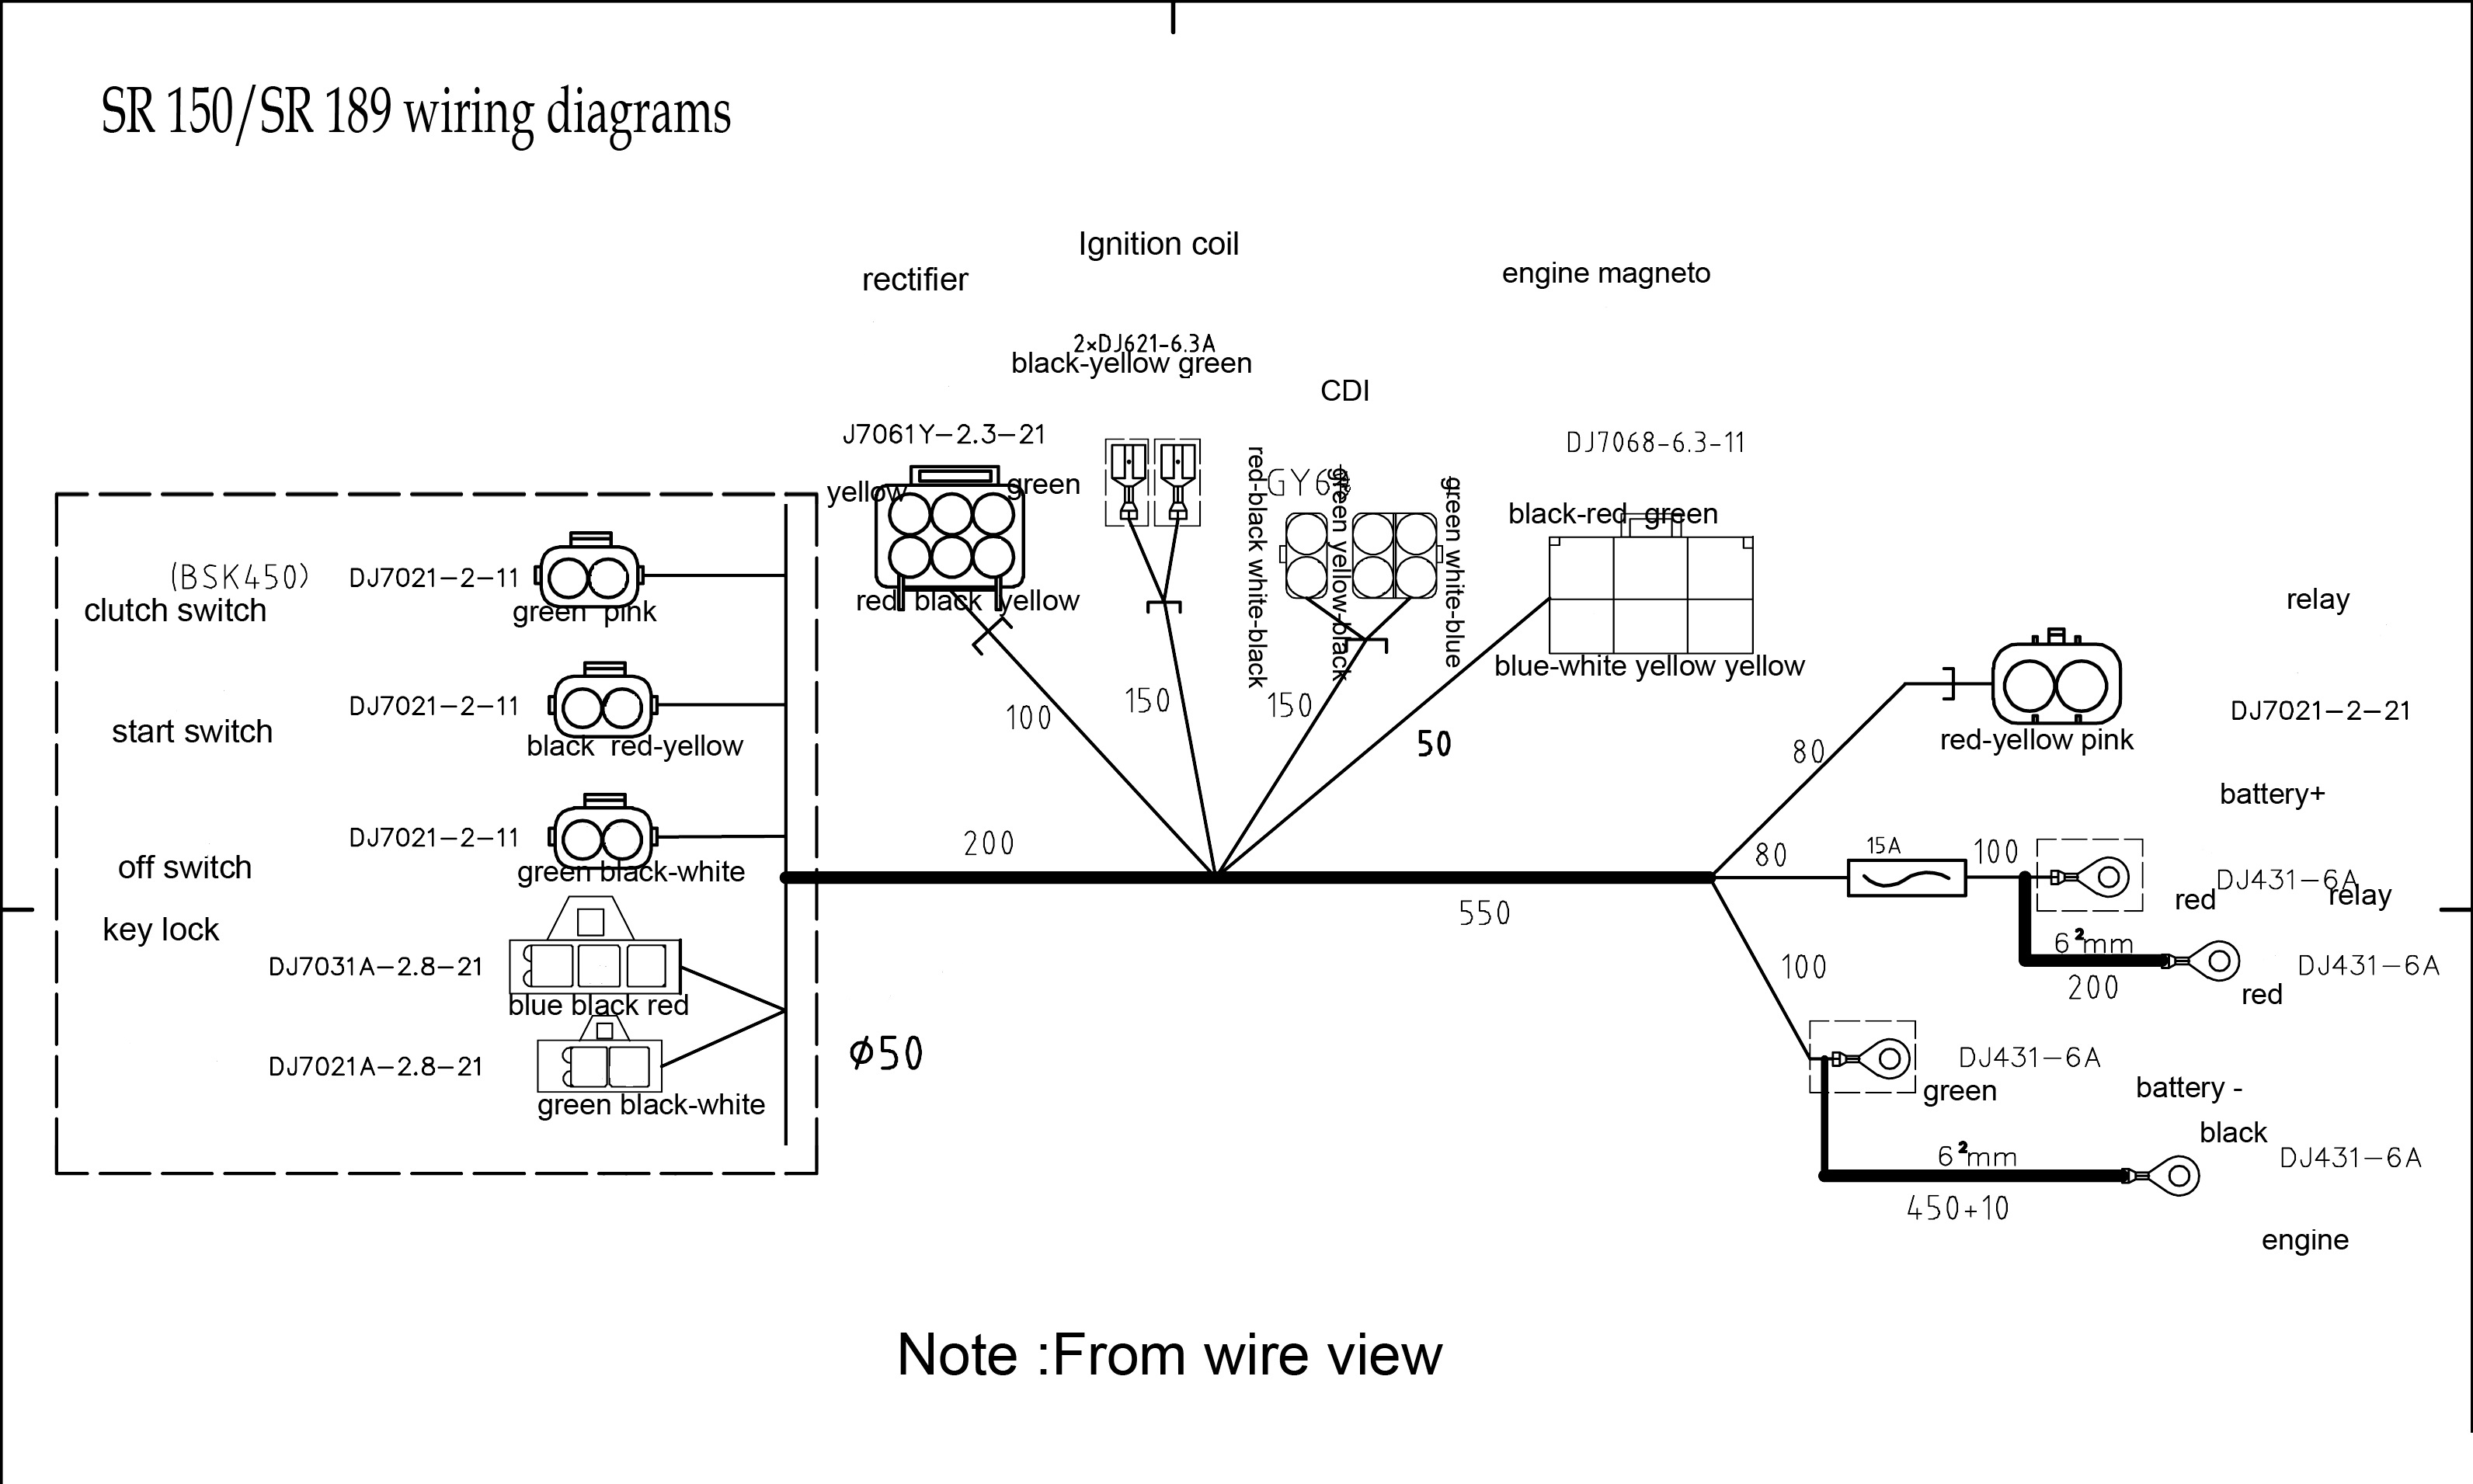 wire diagram Lifan Wiring Diagram sr189 dirt bike wire diagram \u003e lifan wiring diagram